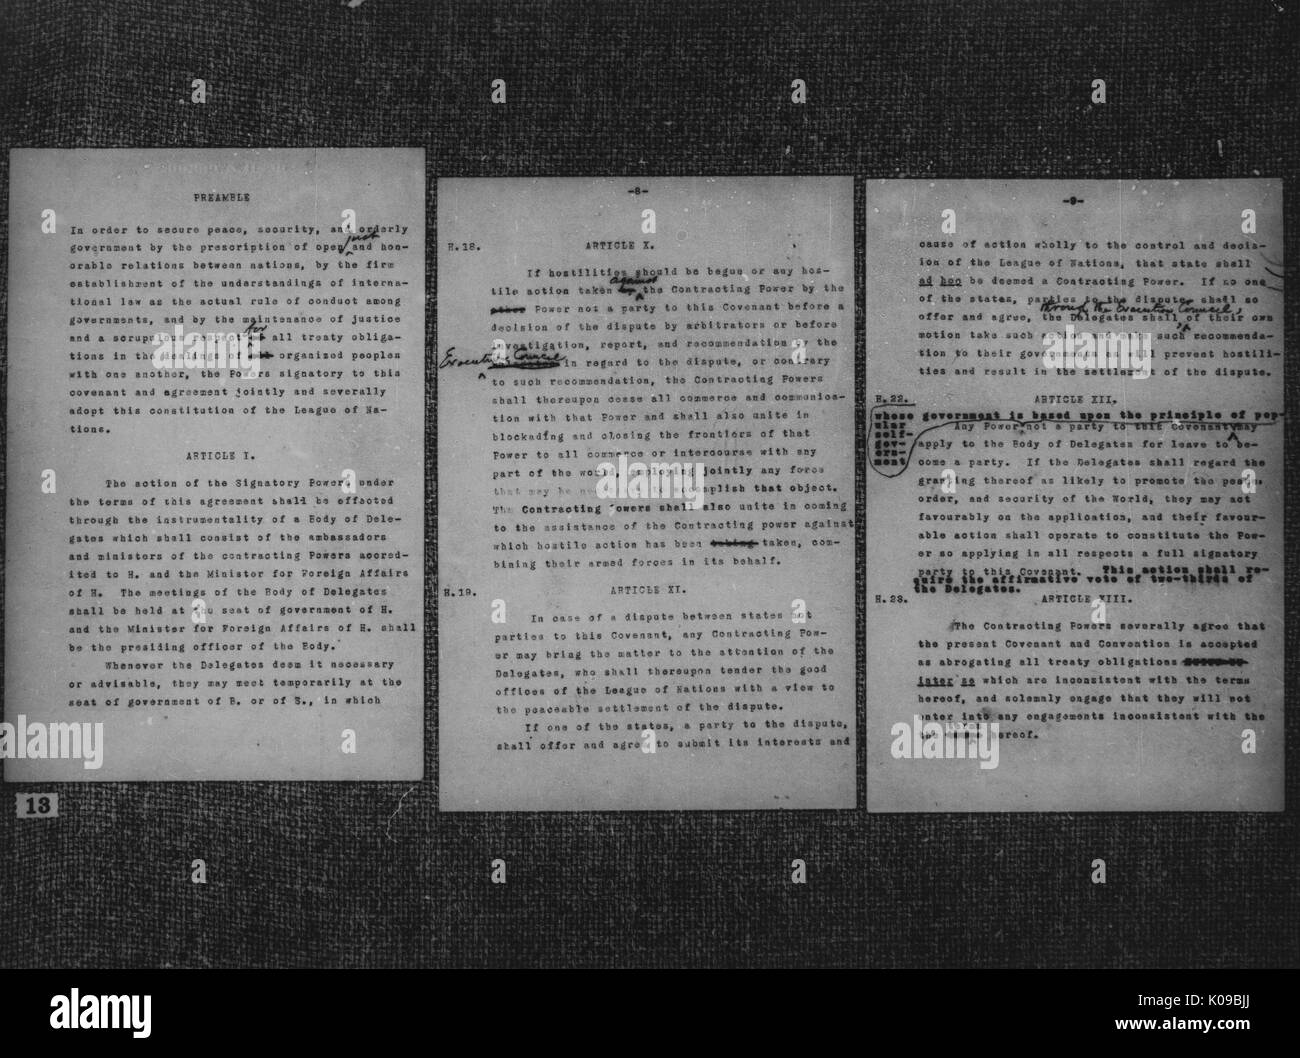 Three pages of an edited copy of articles from Woodrow Wilson, the president of the United States from March 4, 1913 - March 4, 1921, 1917. - Stock Image